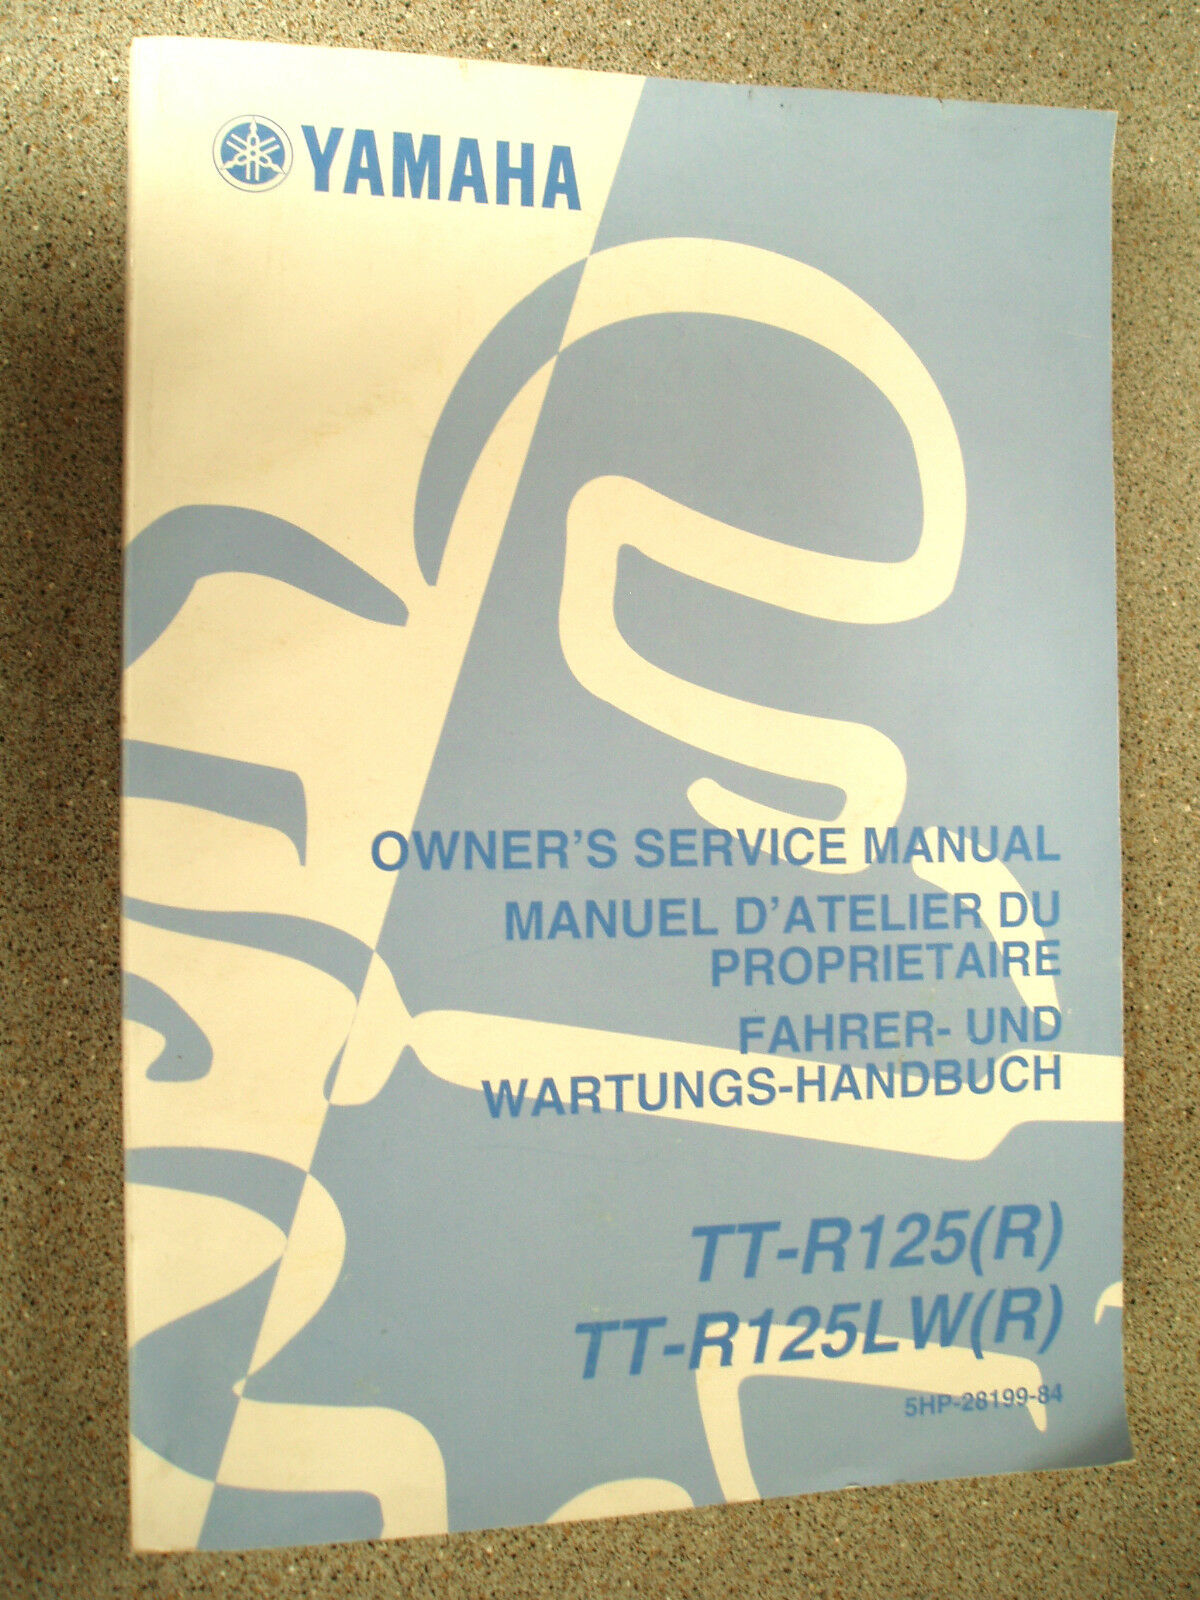 Used Genuine Yamaha TT-R125 TT-R125LW Service Manual 5HP-28199-84 1 of  1Only 1 available ...